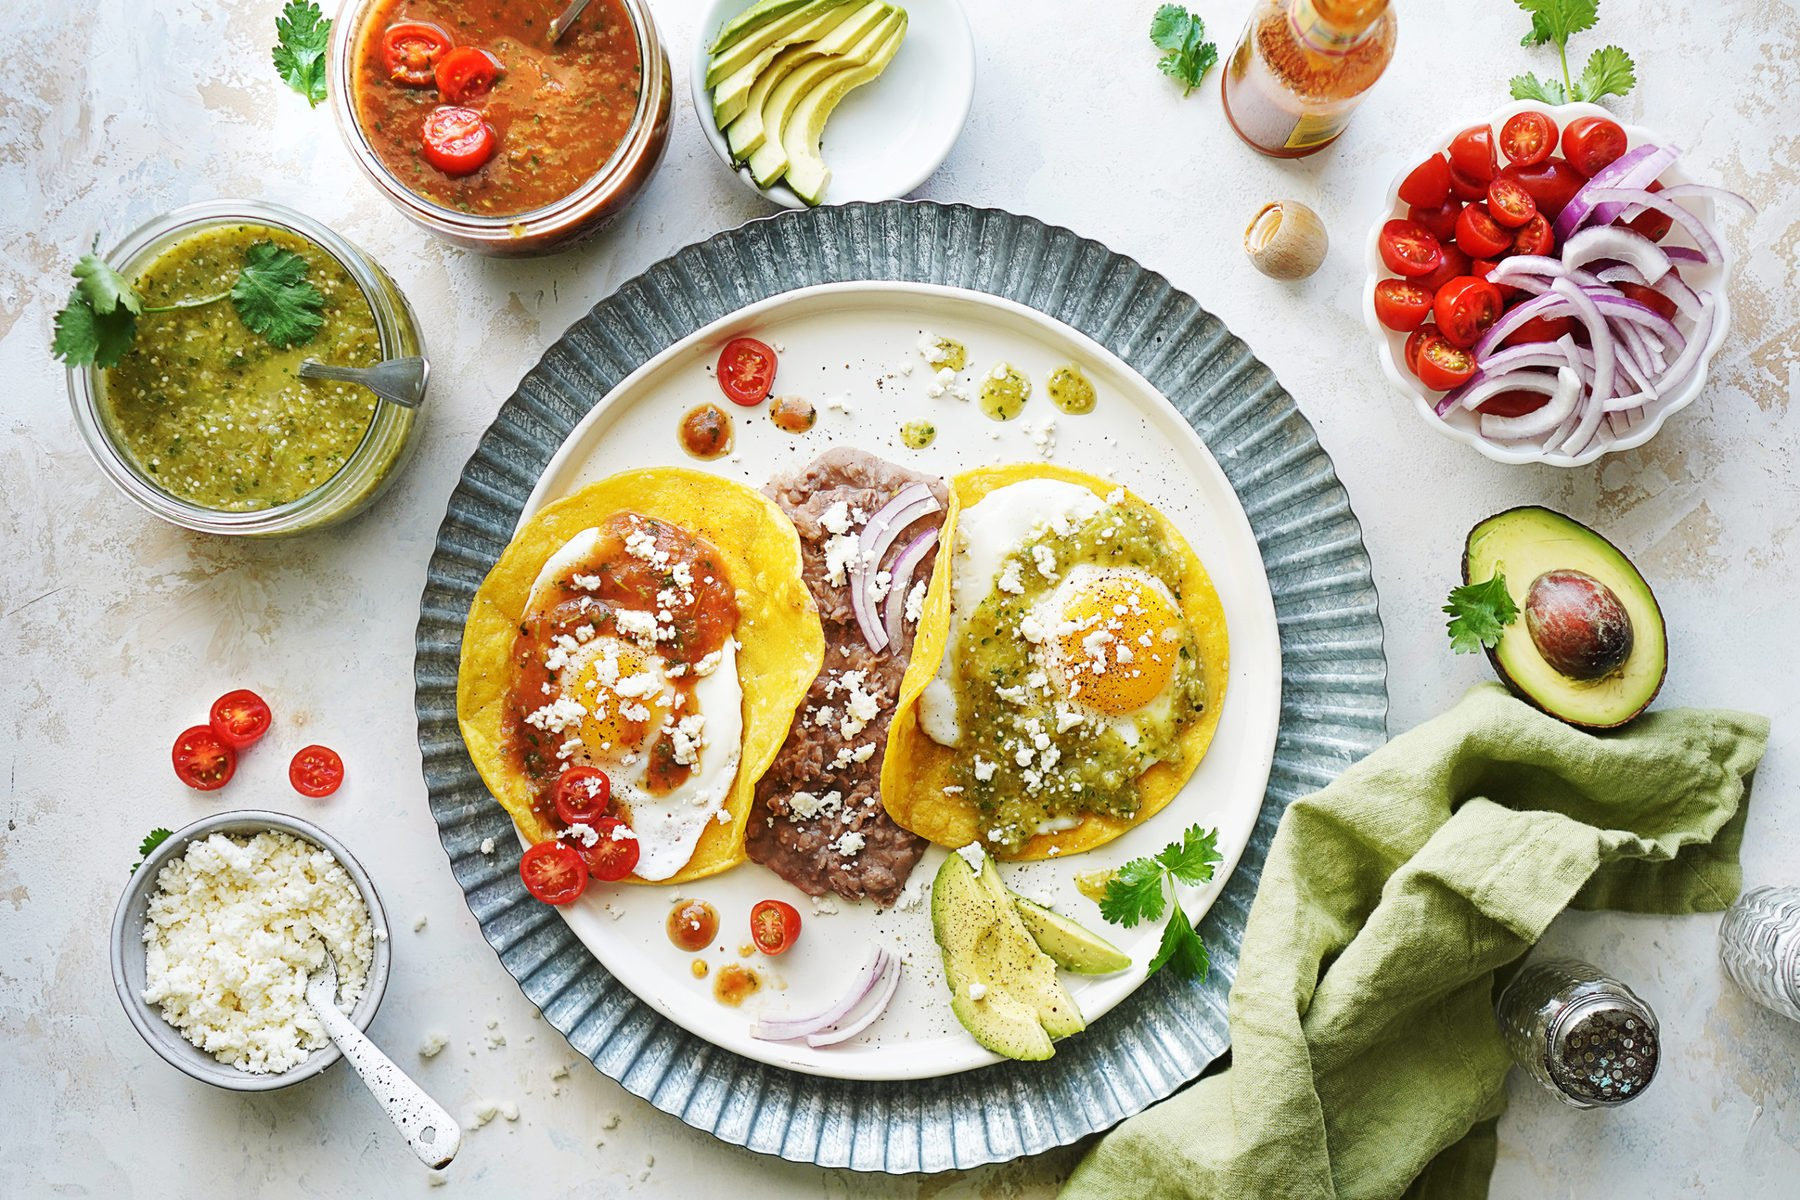 A table top with a plate with eggs, salsas on the side, avocado and queso fresco